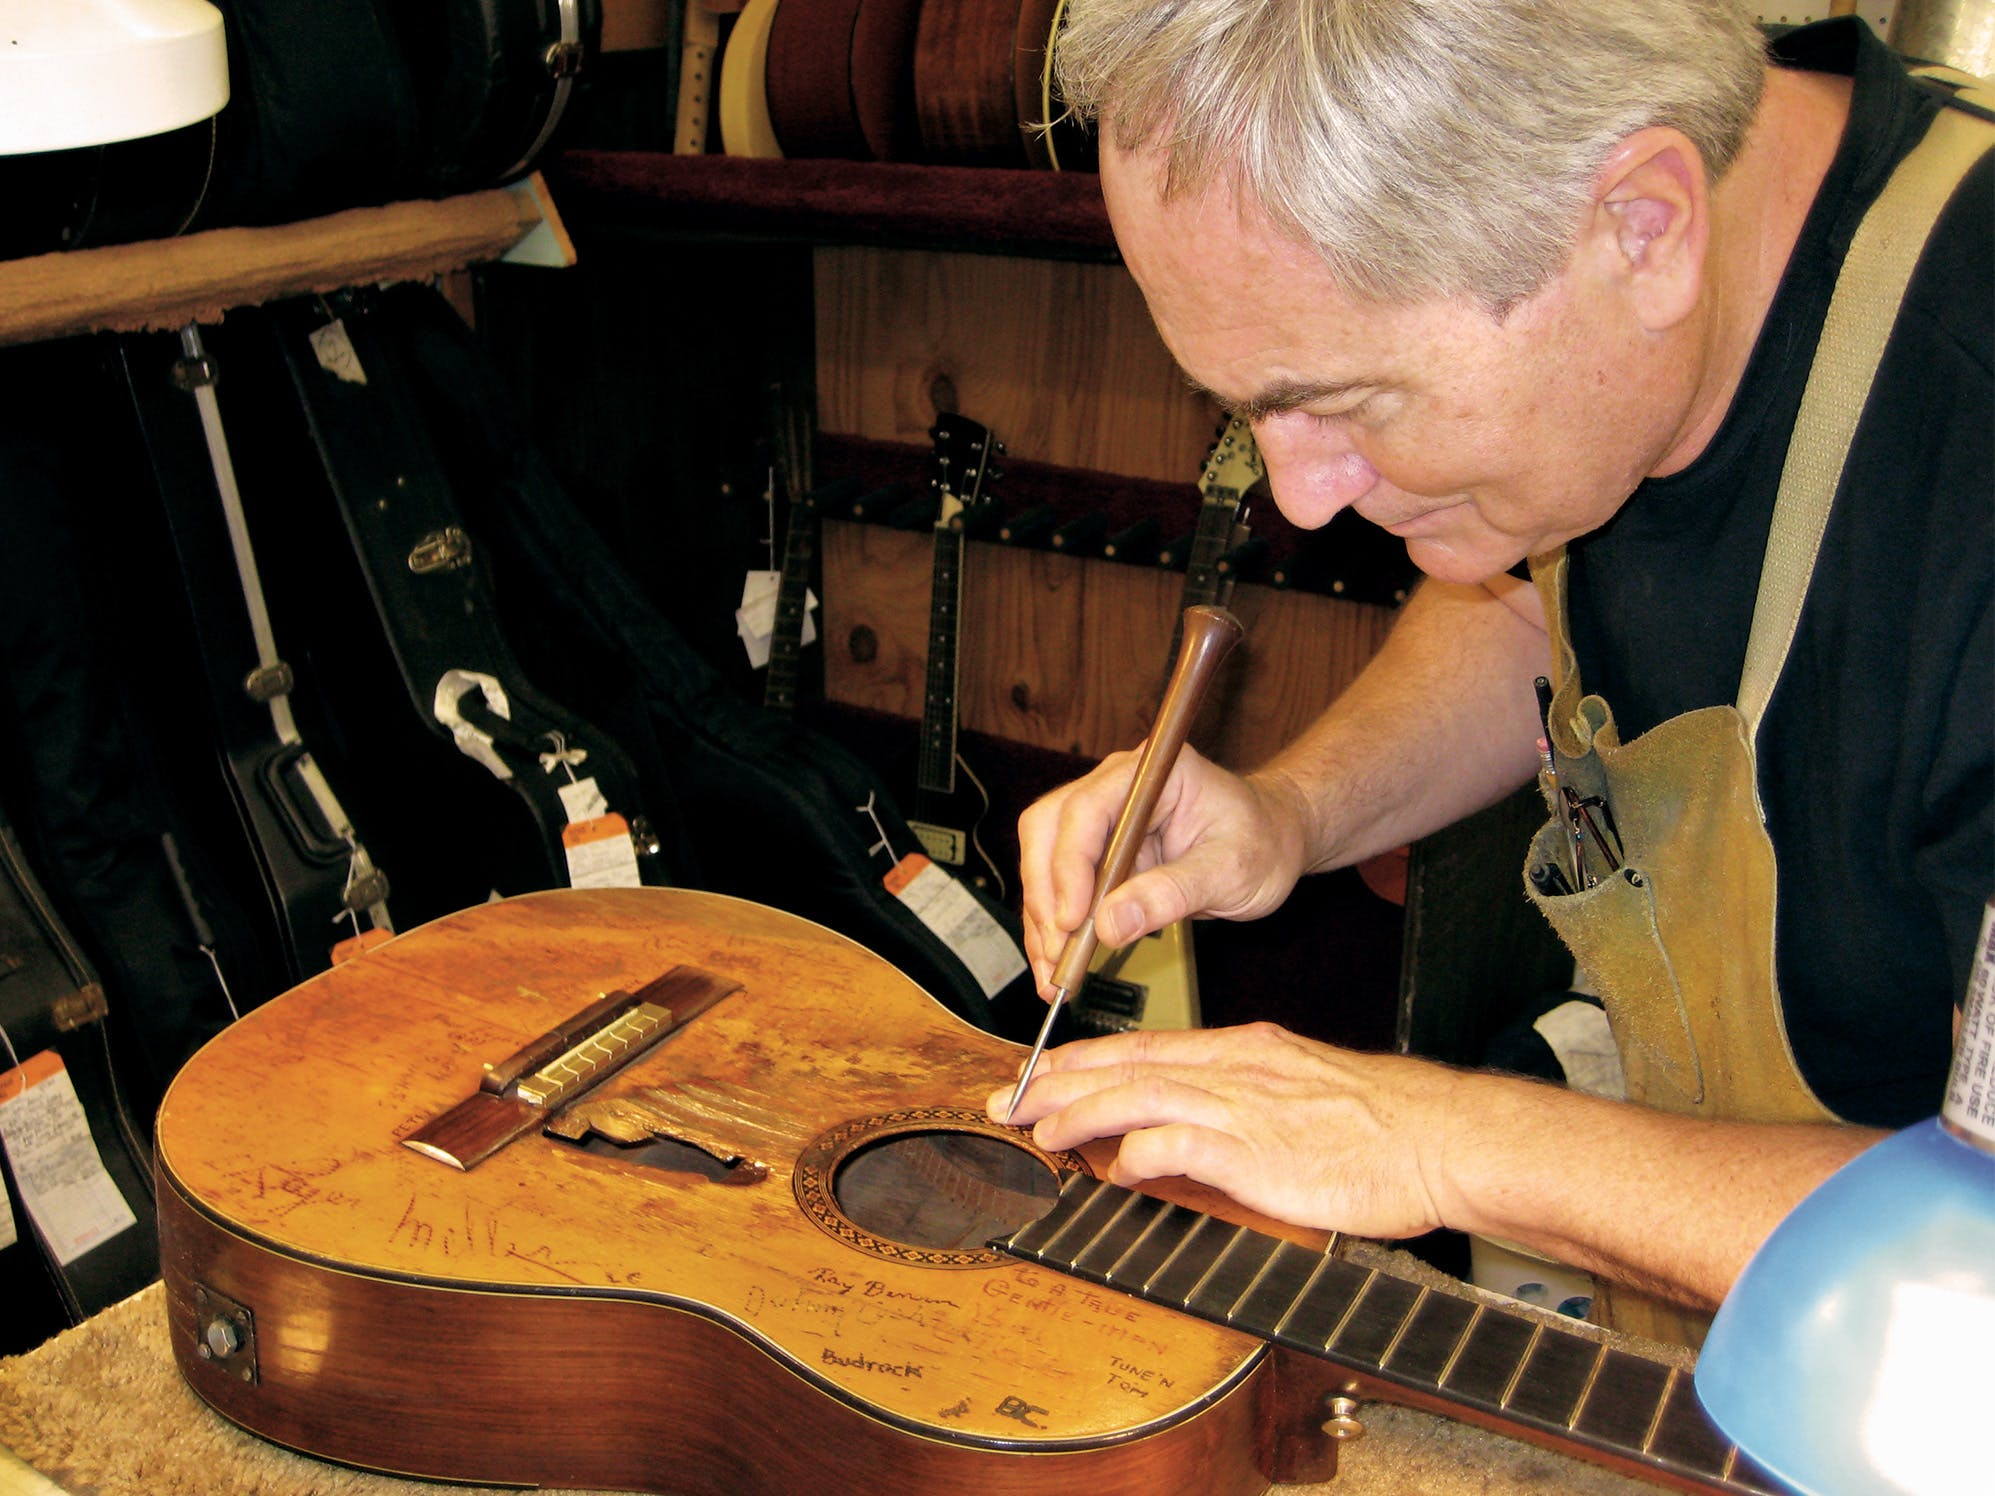 Mark Erlewine at work in his shop, cleaning the soundboard with an awl. On its tip is a piece of a diaper dipped in naphtha solvent.